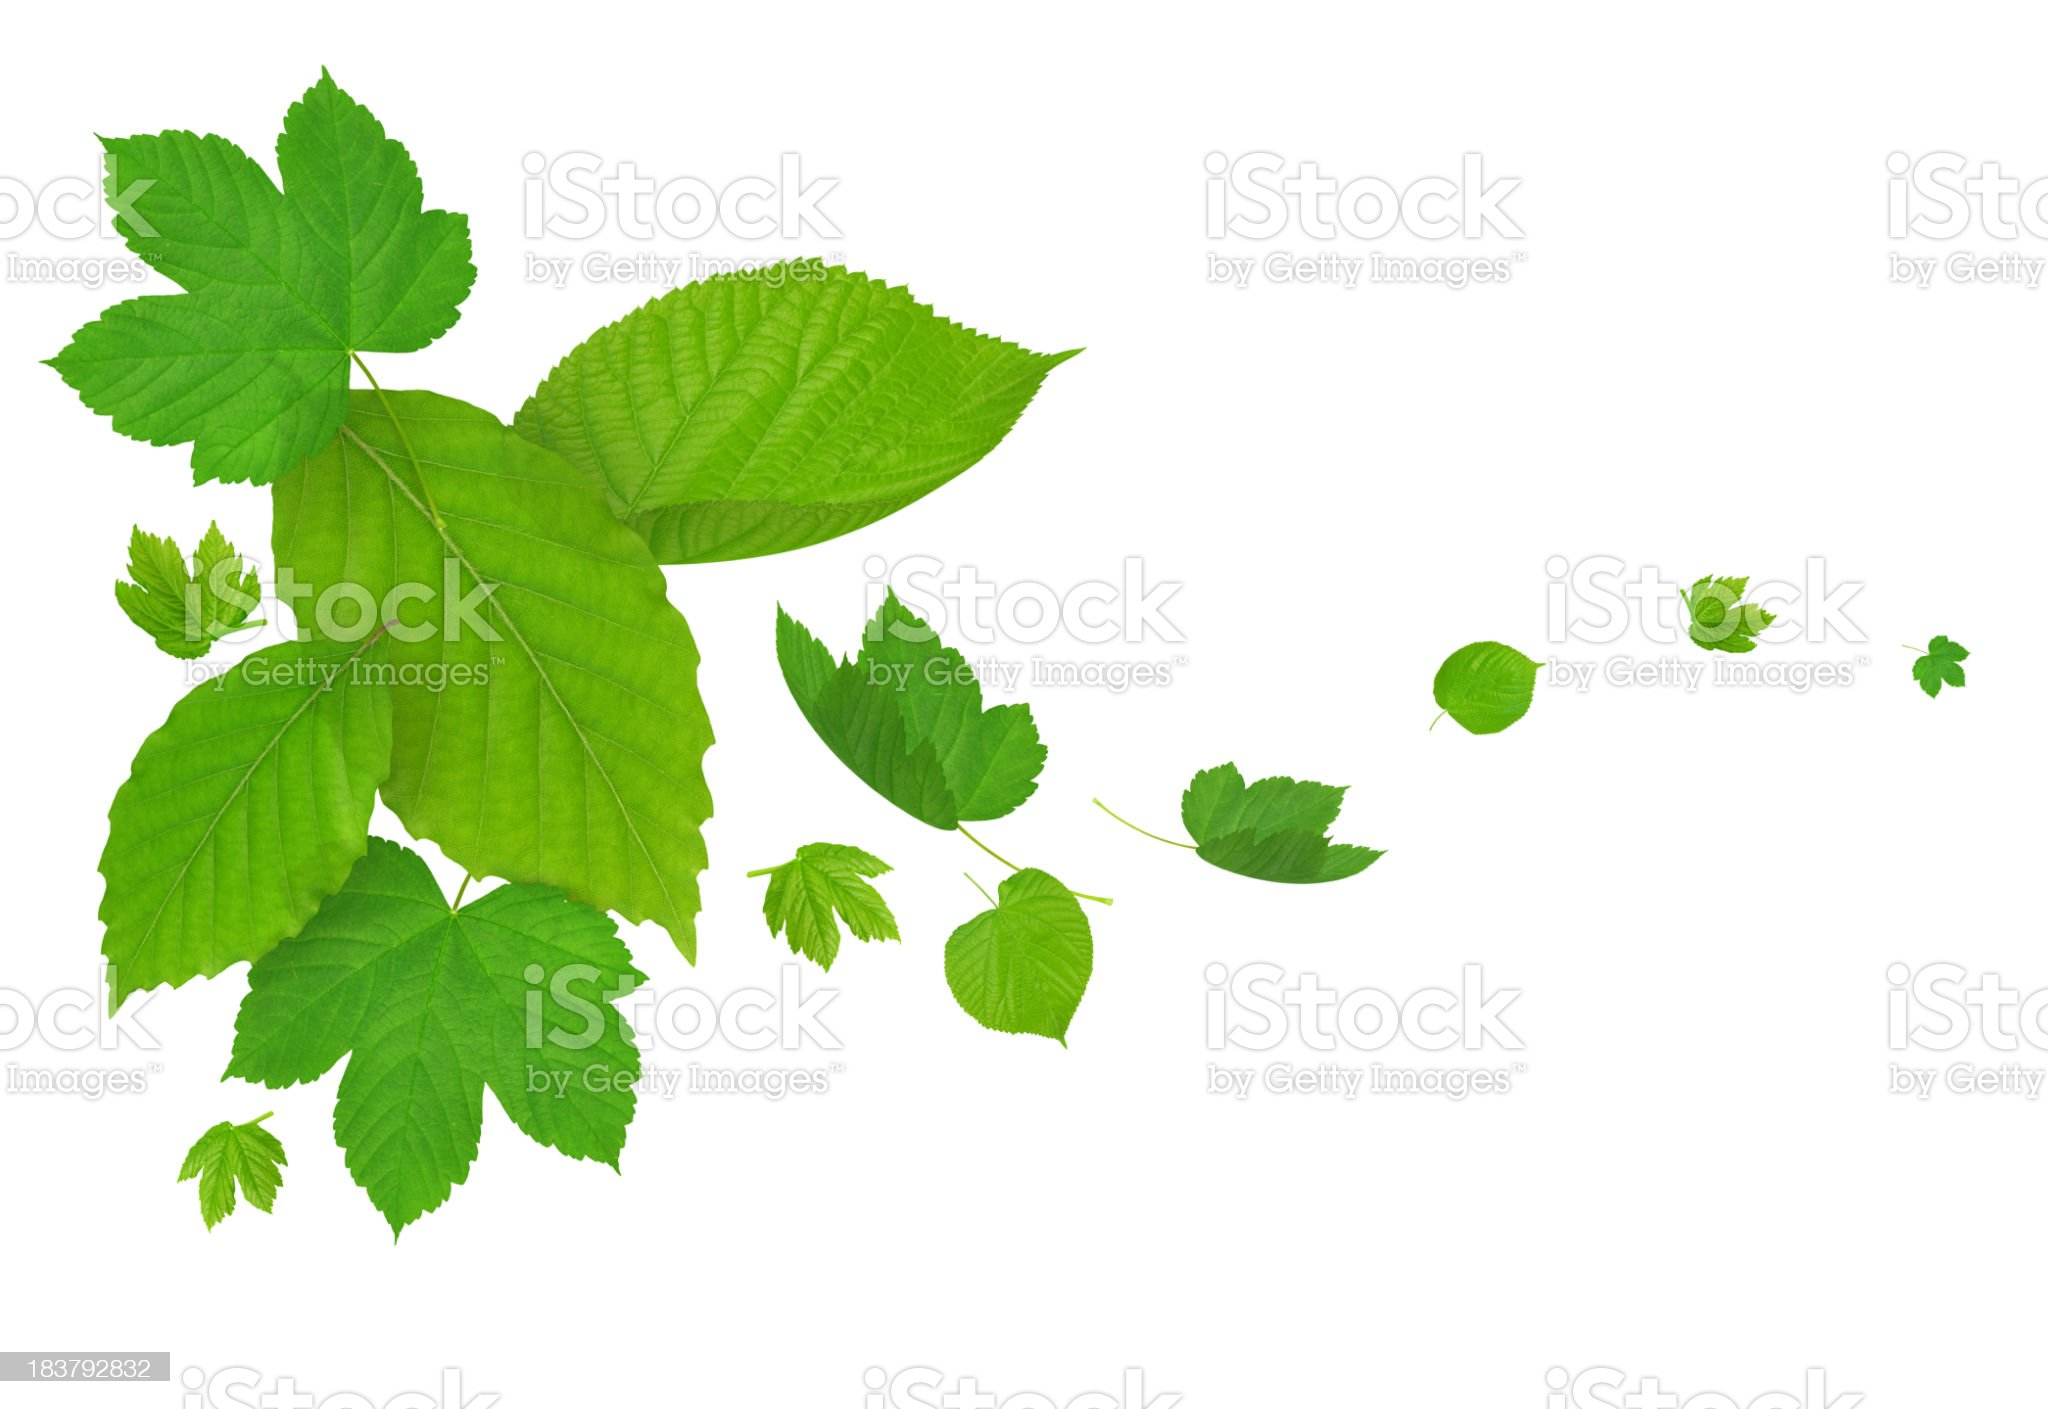 Falling Green Leaves royalty-free stock photo